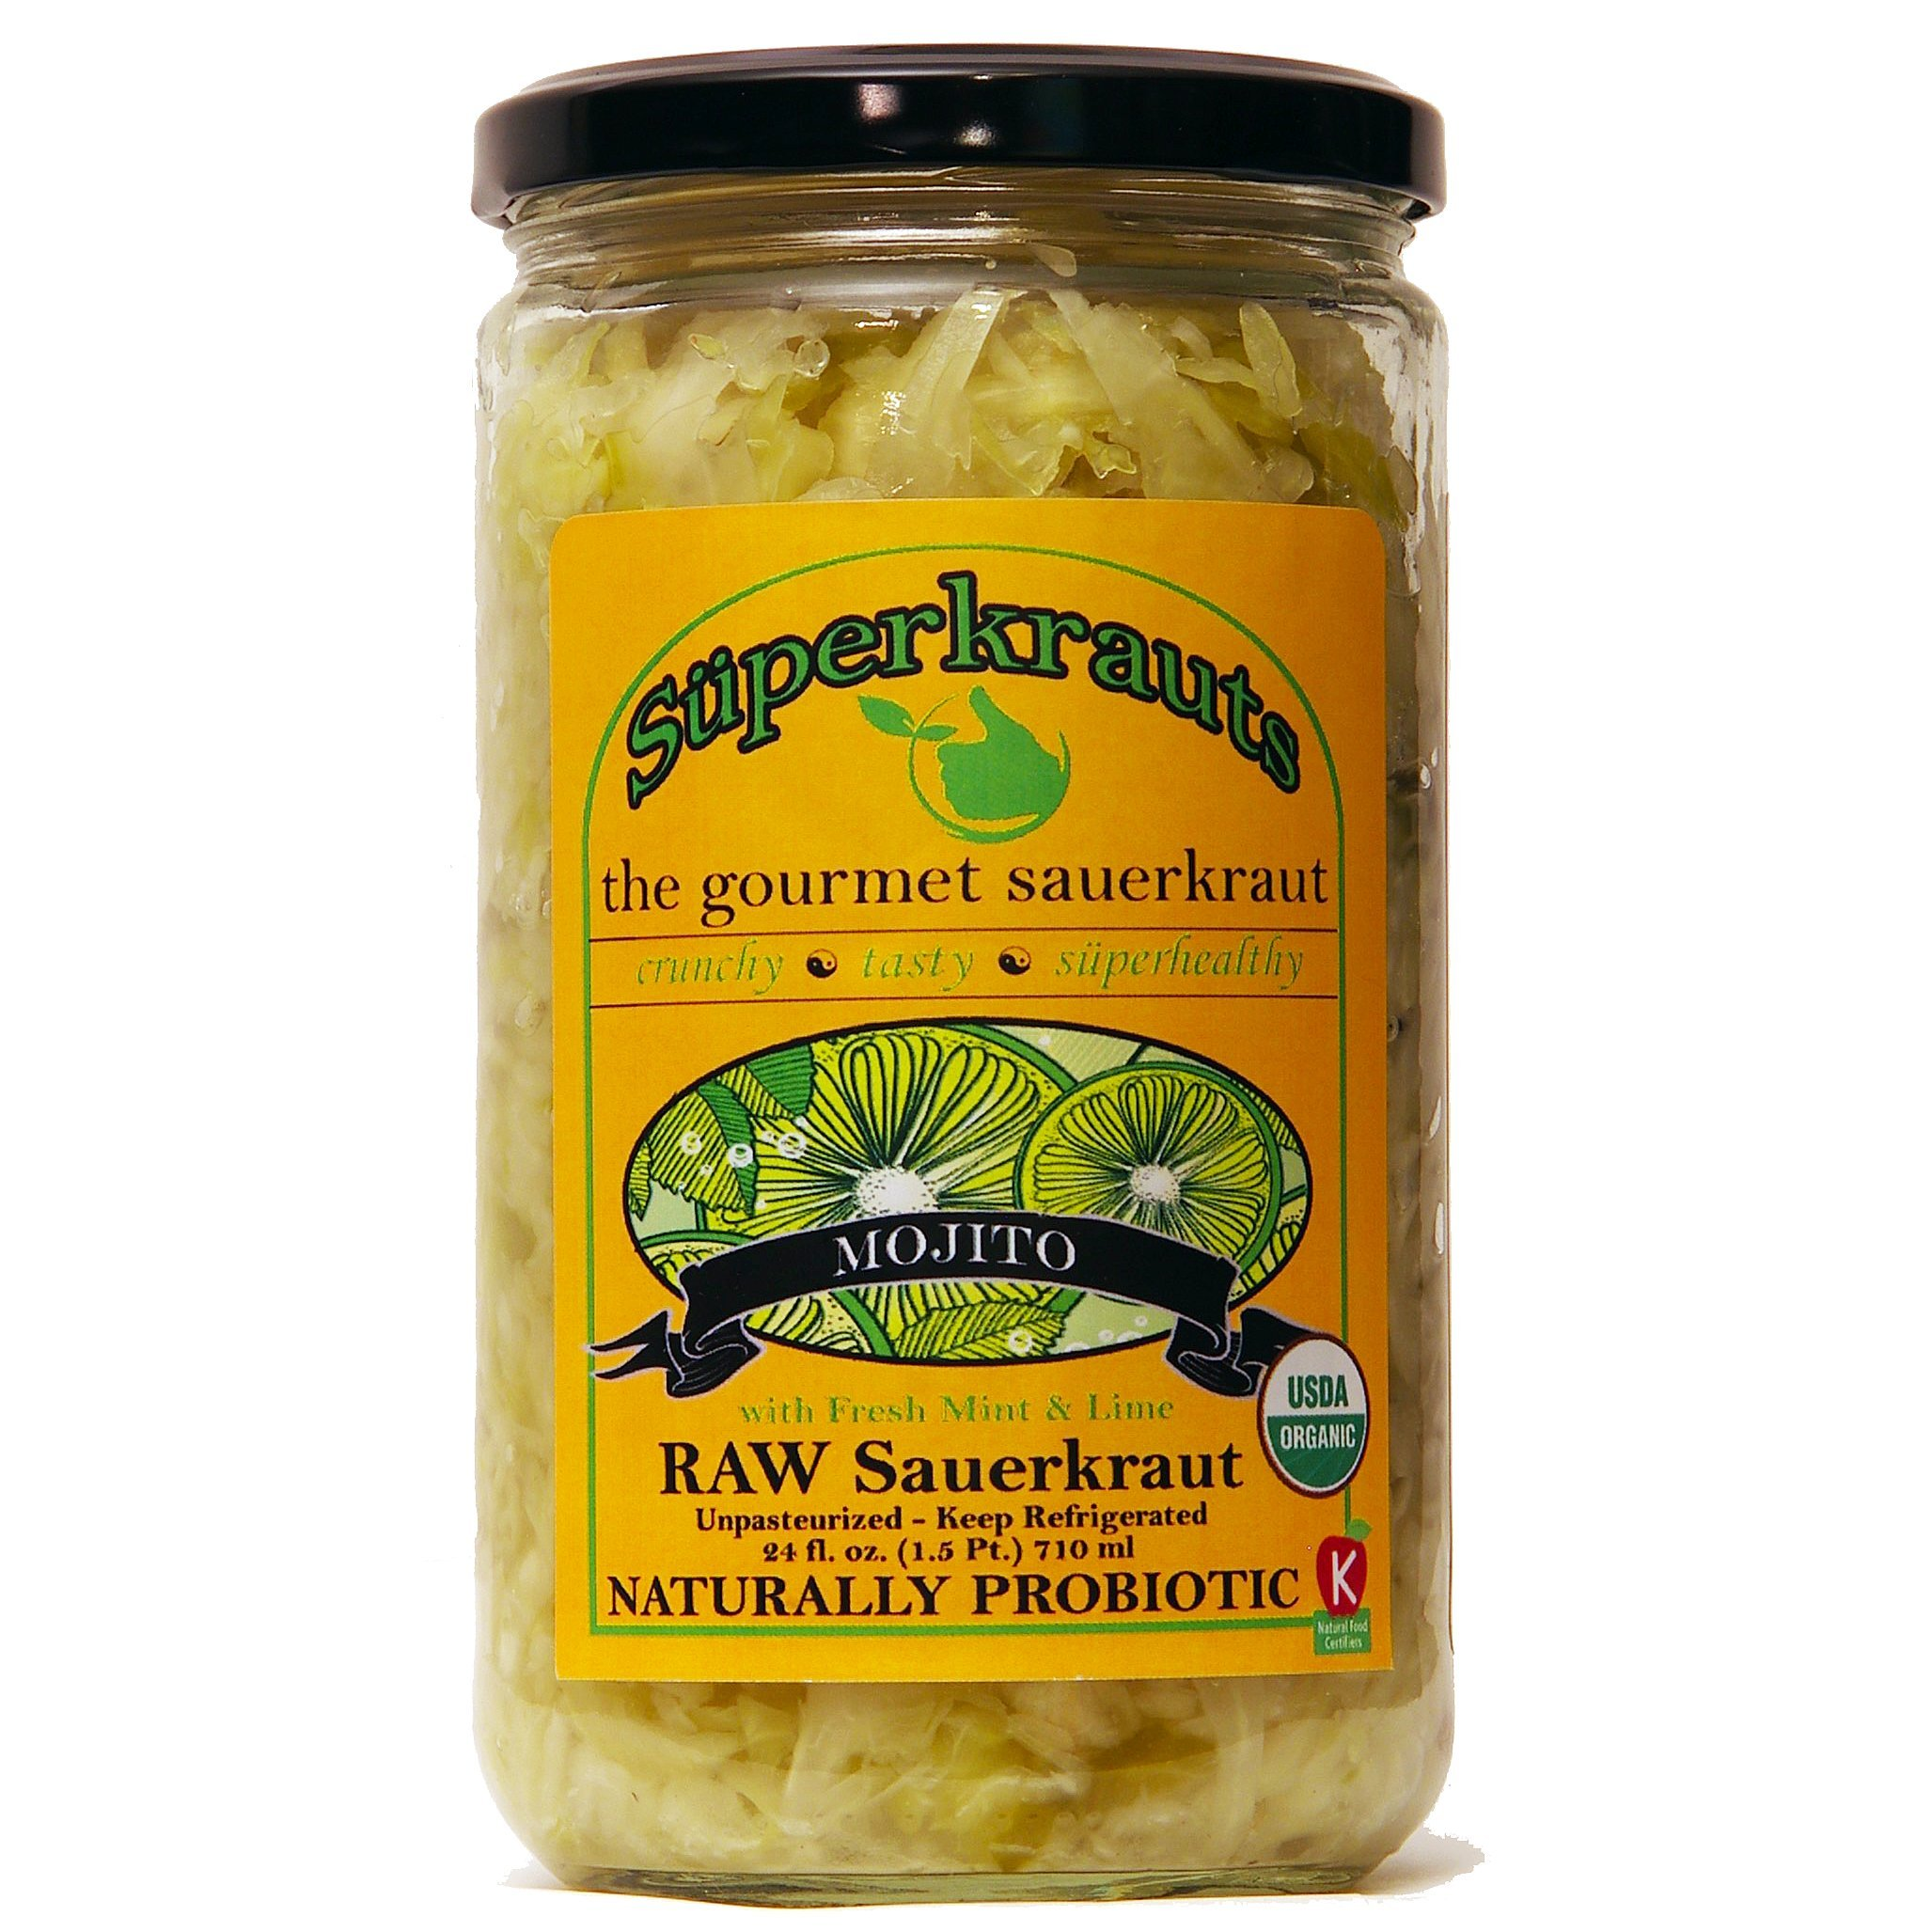 """Mojito"" gourmet sauerkraut: organic, raw fermented, unpasteurized, probiotic, kosher, vegan and gluten free. 24 fl. oz, 16 flavors available. No shipping charges with minimum. by Superkrauts"